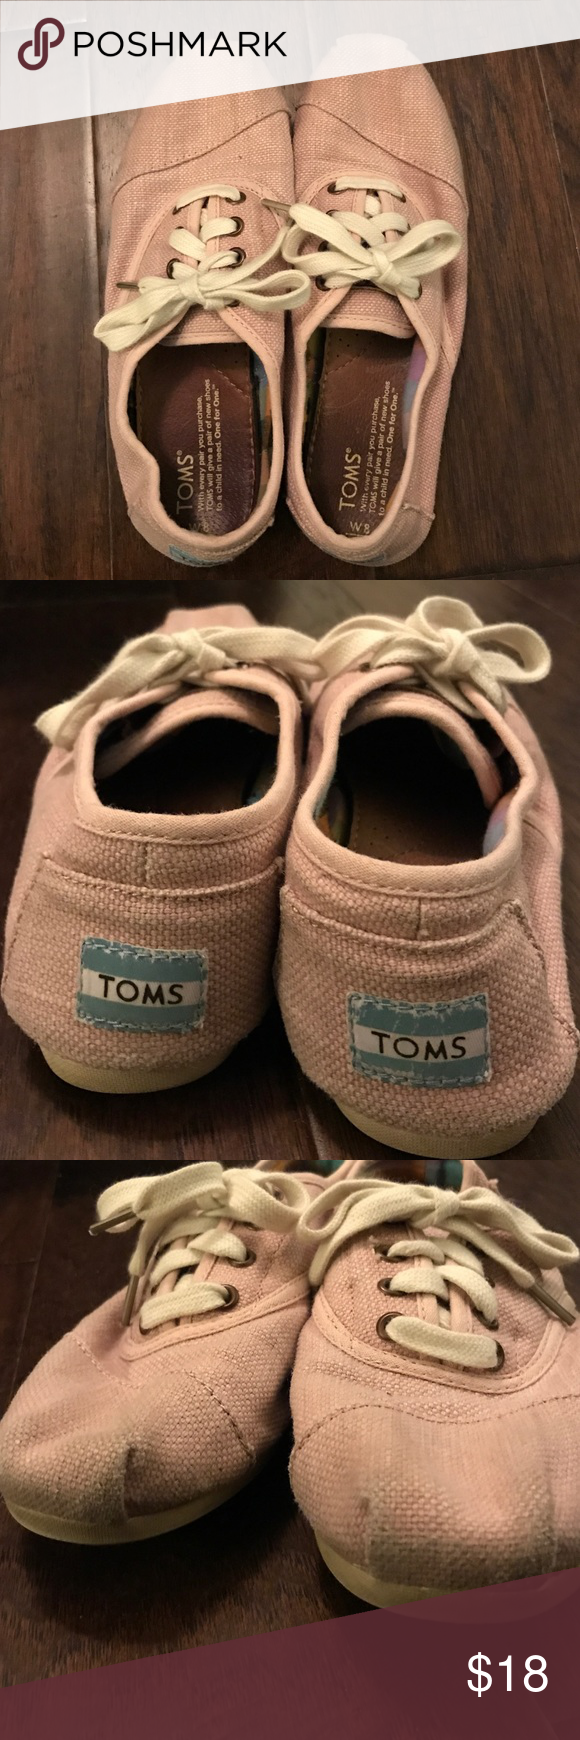 Toms Lace Up Shoes Toms light pink fabric with cream lace. Worn but in good condition. Women's size 8. TOMS Shoes